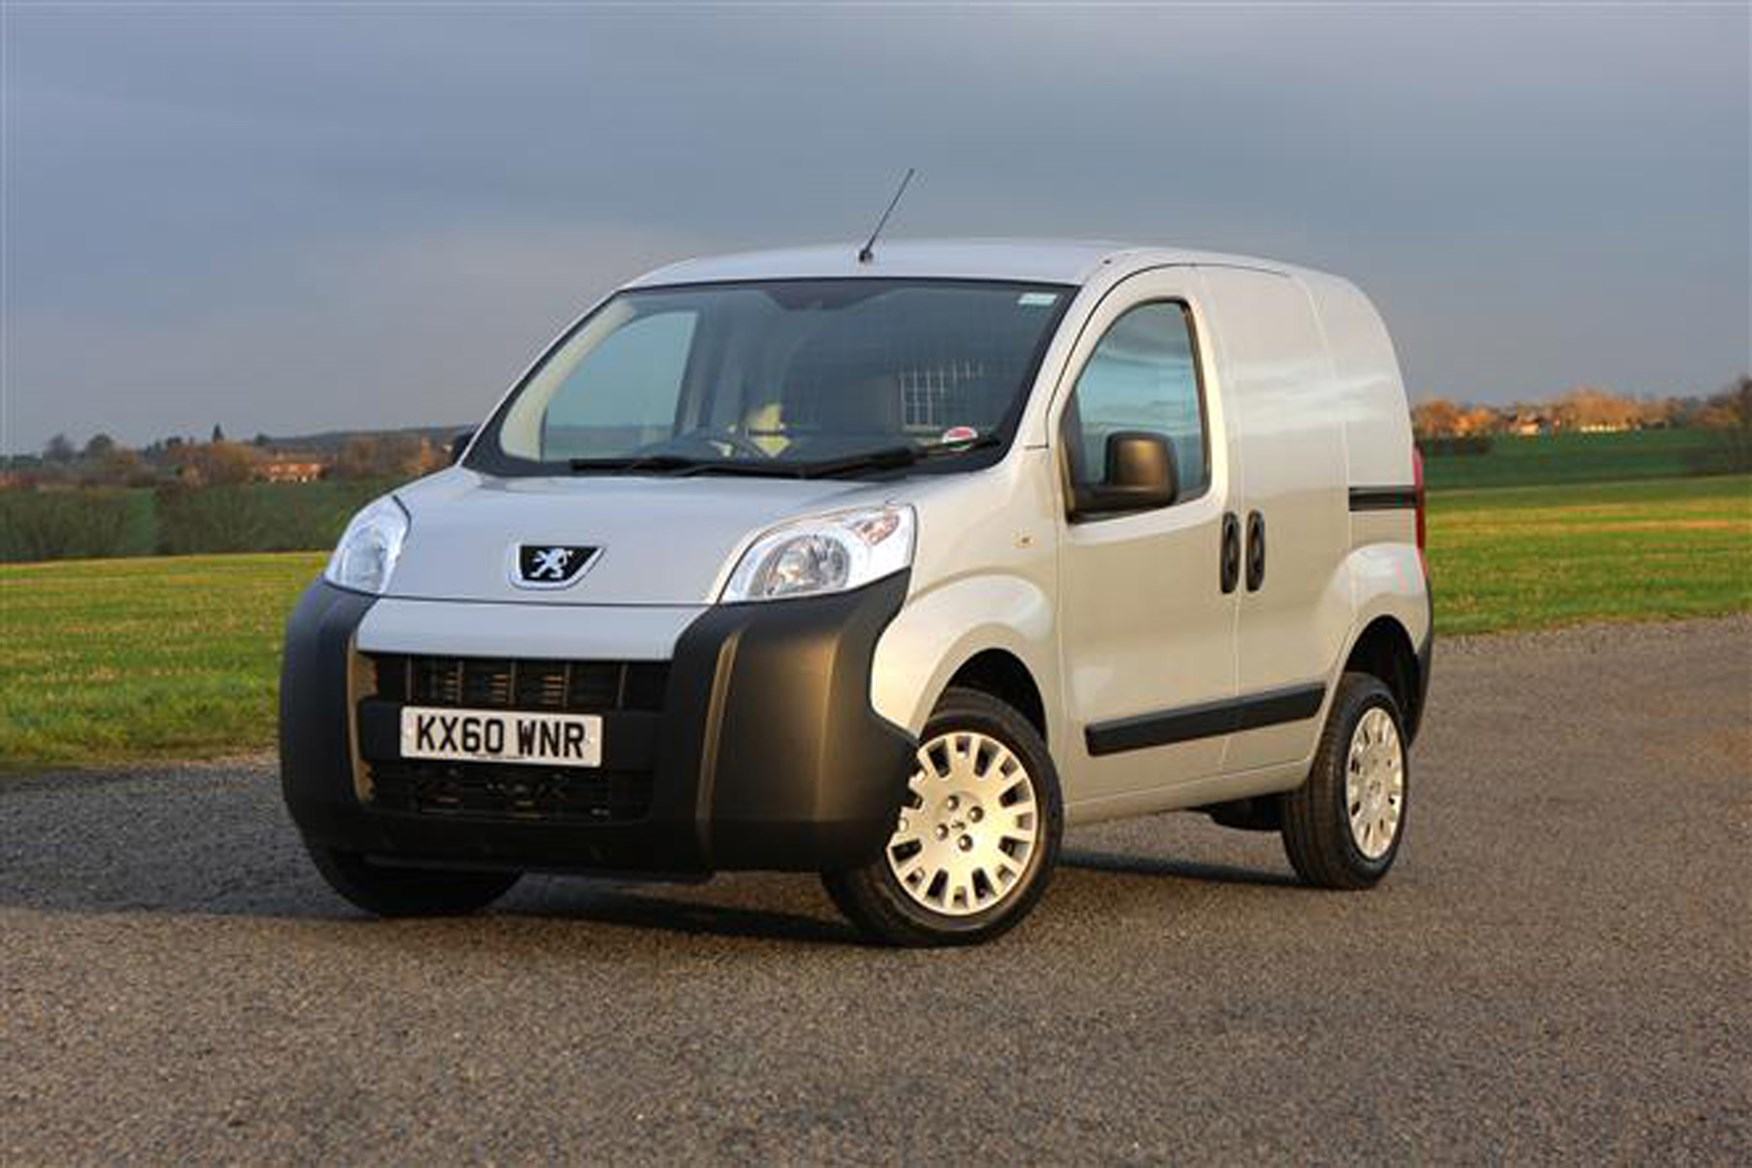 Peugeot Bipper review on Parkers Vans - exterior